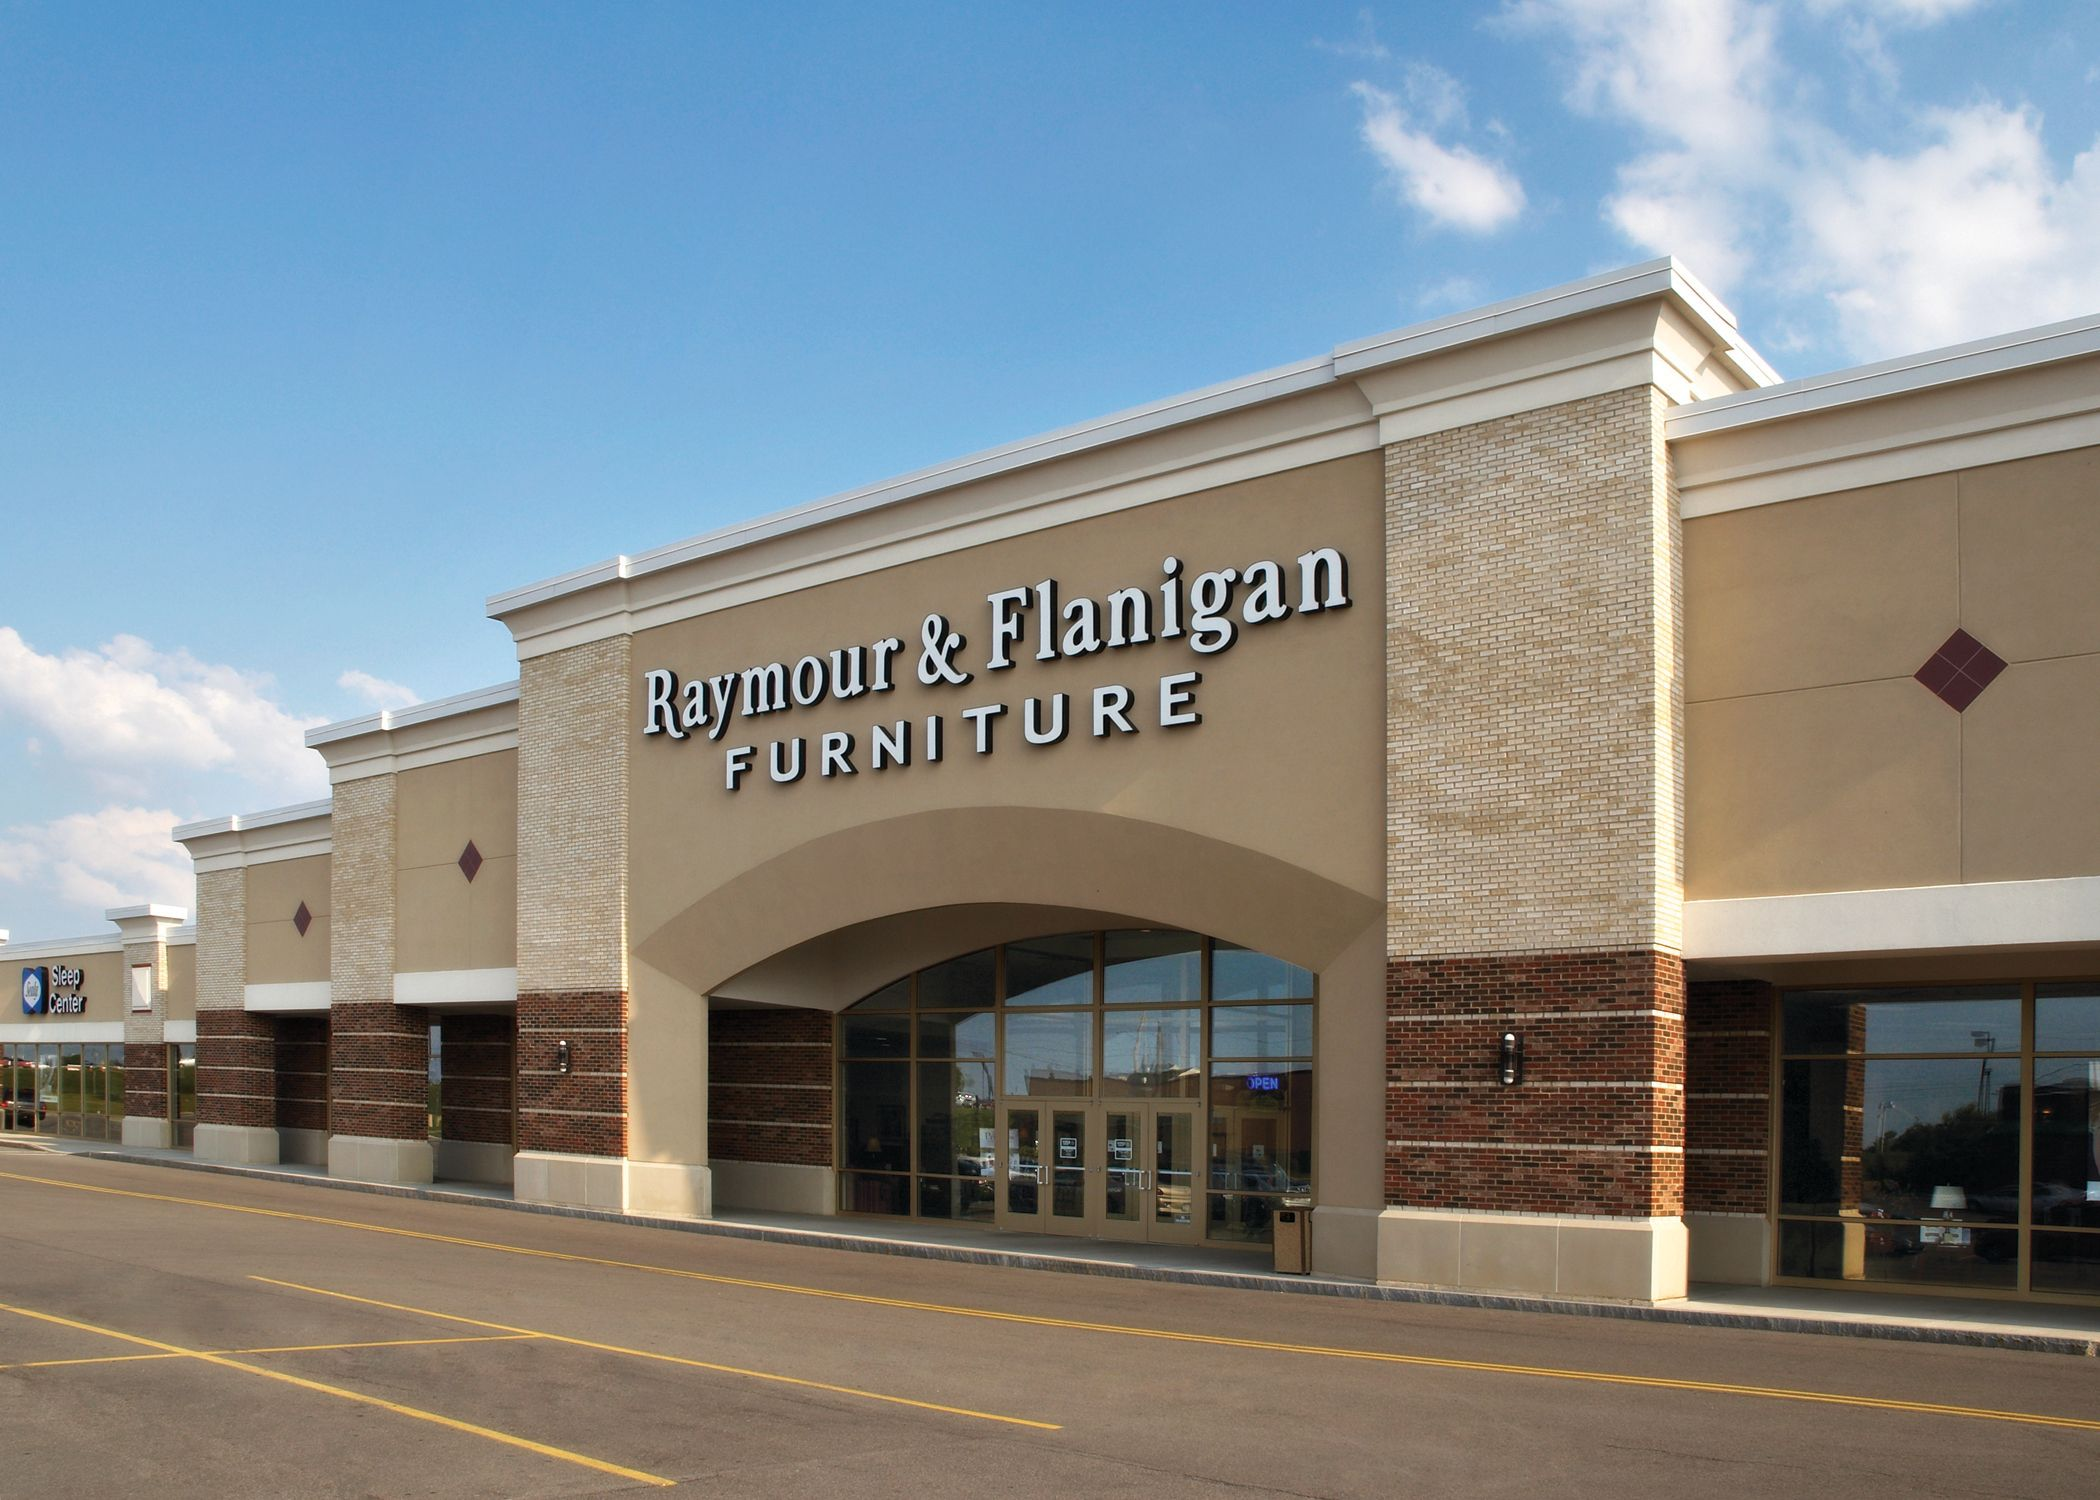 Top 10 Furniture Stores  Find the Best Brands. How to Run a Successful Furniture Retail Store